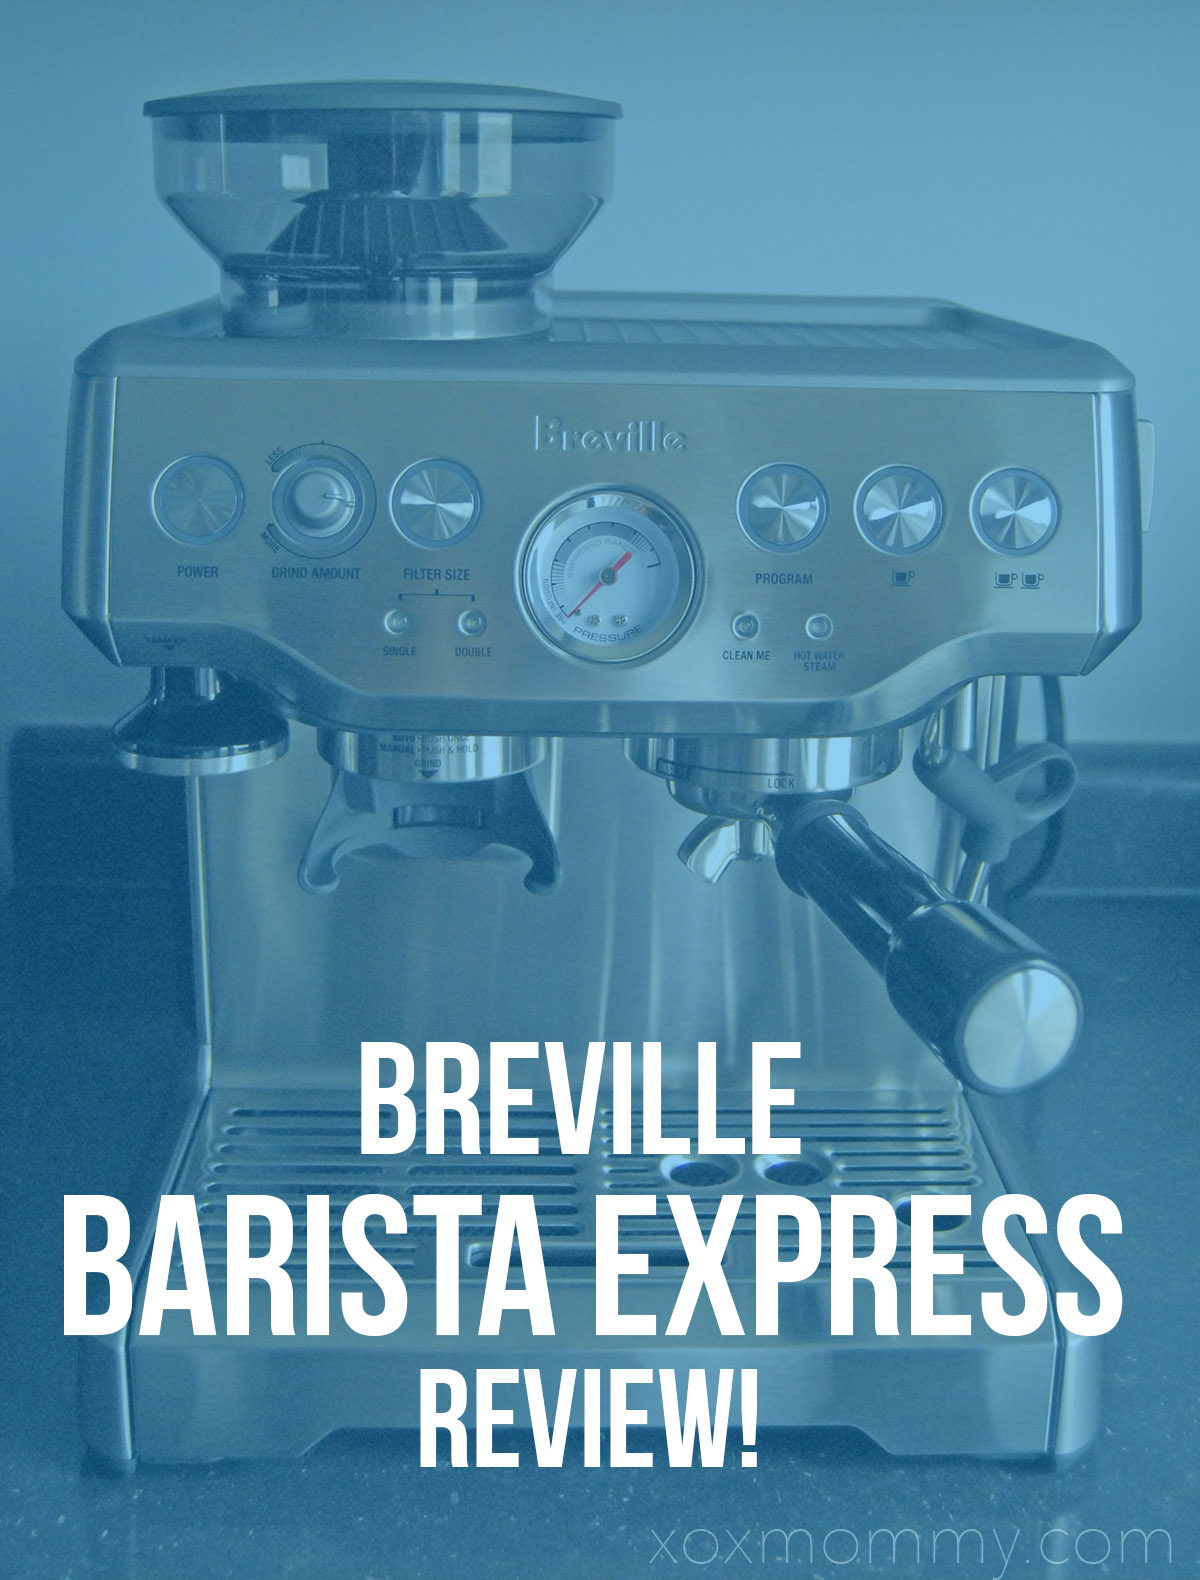 Breville Barista Express Review